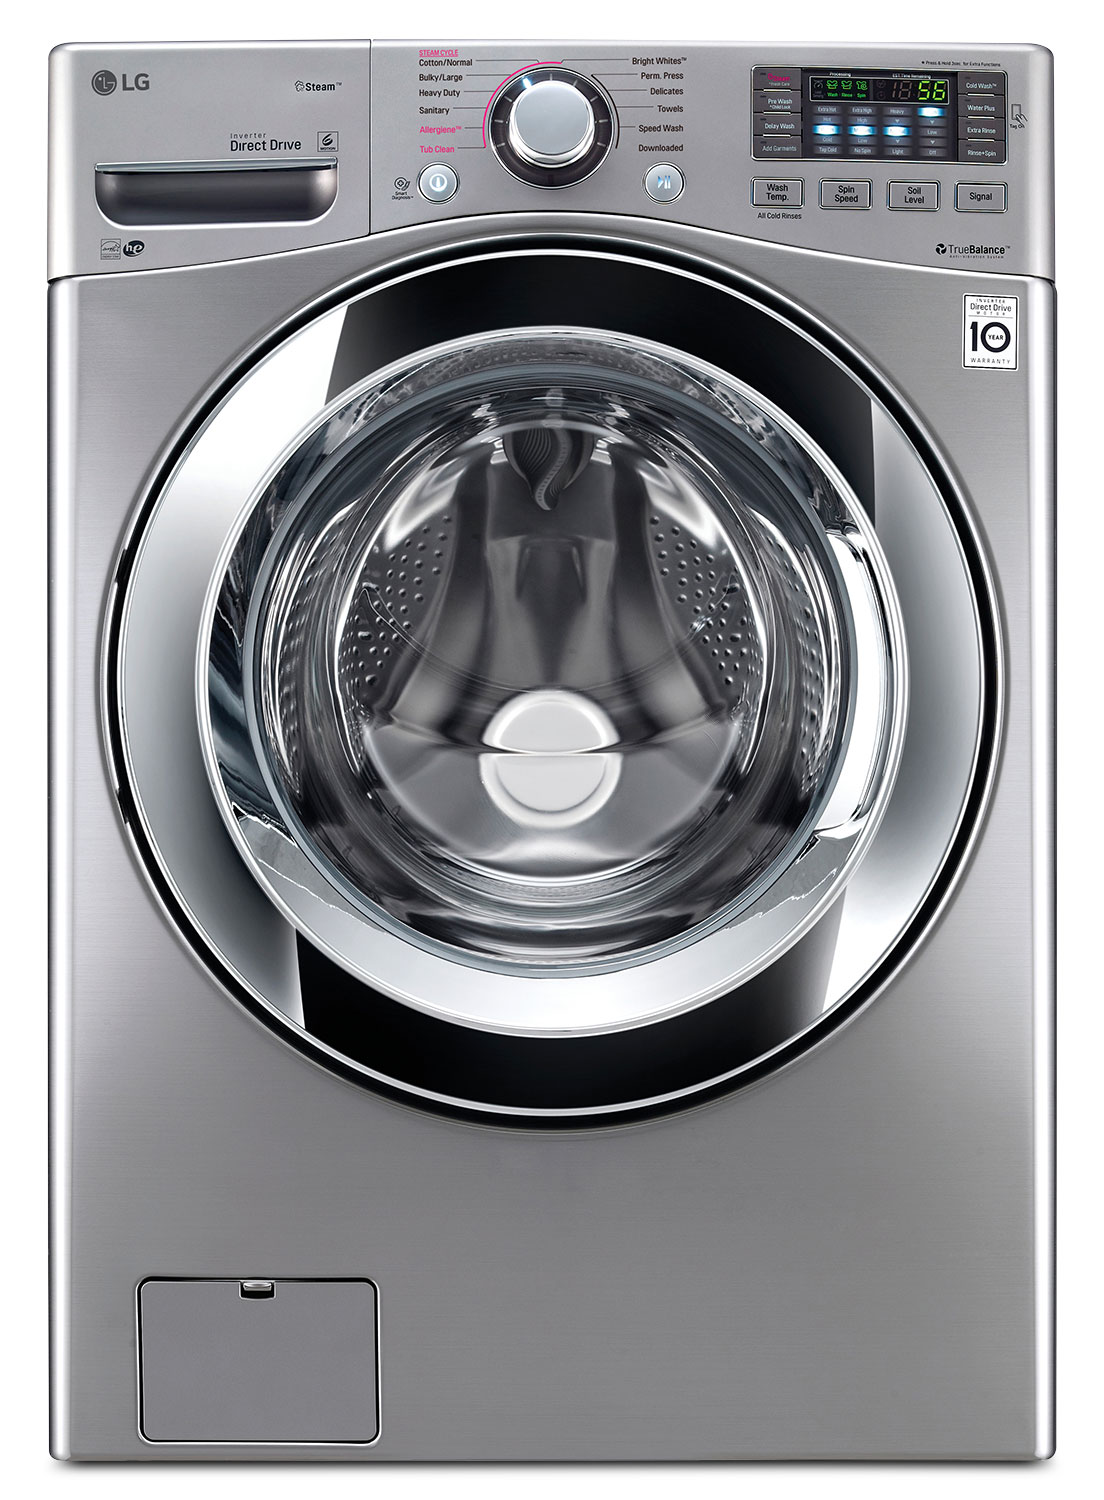 LG Graphite Steel Front-Load Washer (5.2 Cu. Ft.) - WM3670HVA